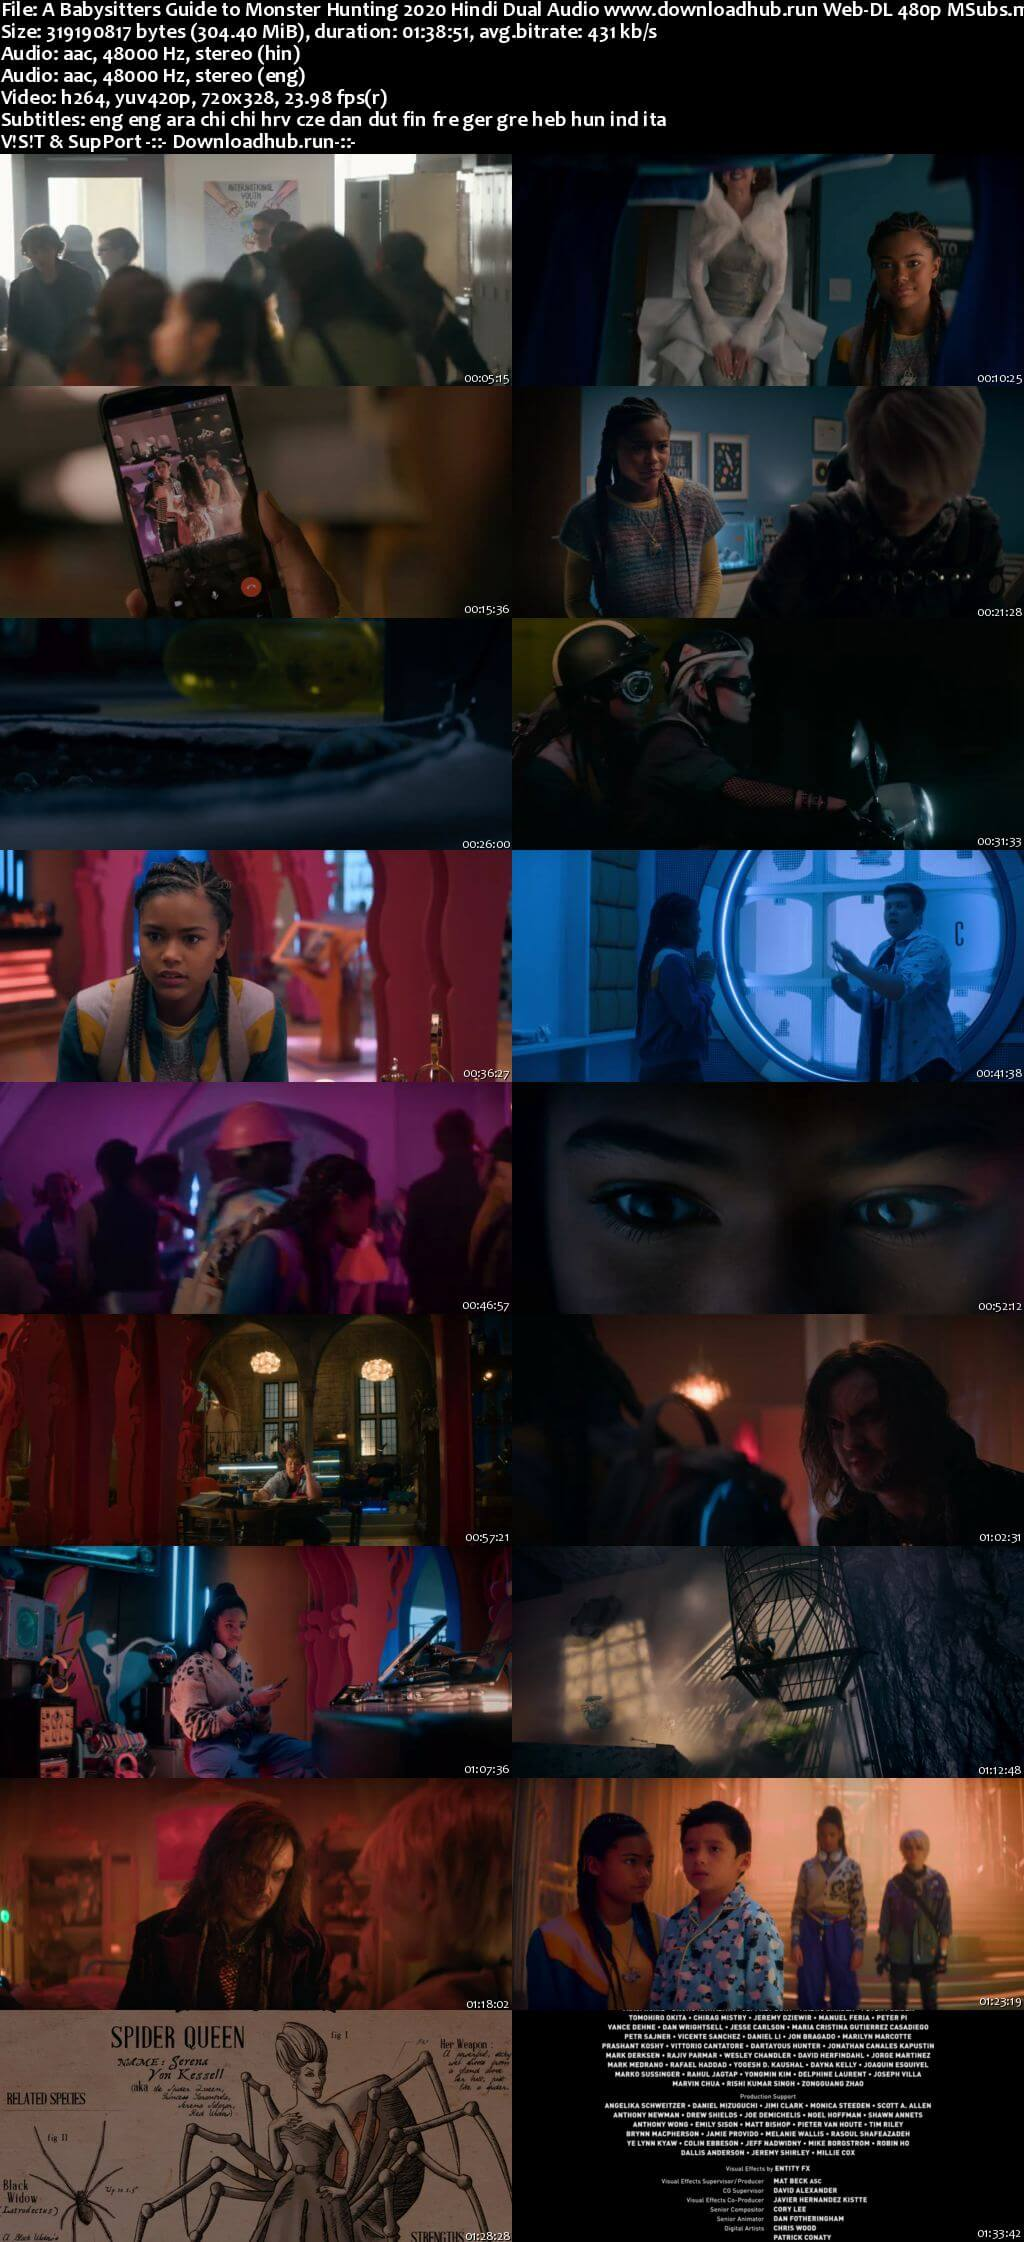 A Babysitters Guide to Monster Hunting 2020 Hindi Dual Audio 300MB Web-DL 480p MSubs